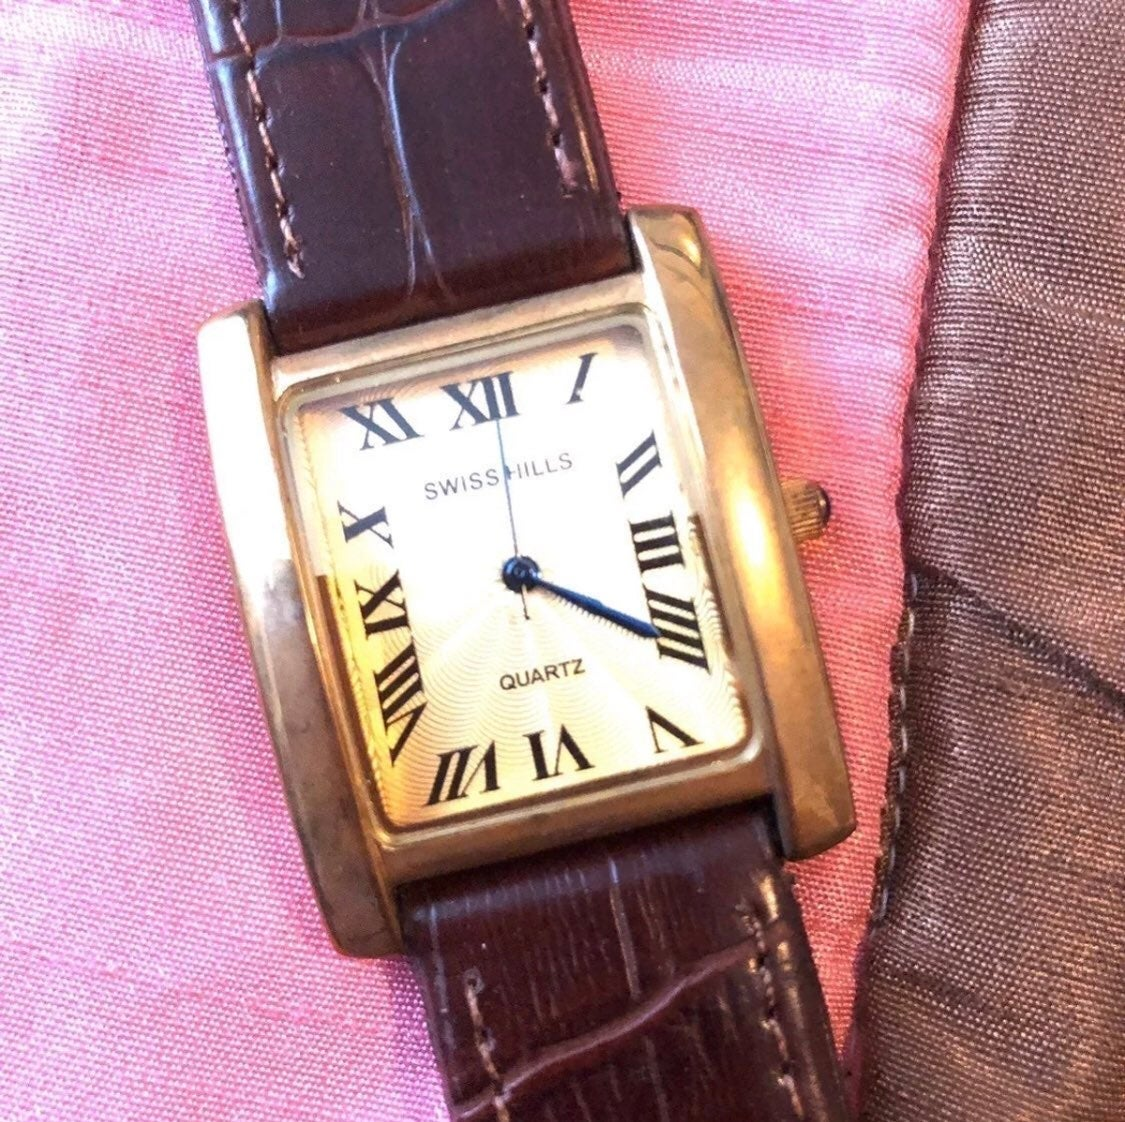 Swiss Hill watch leather strap - new